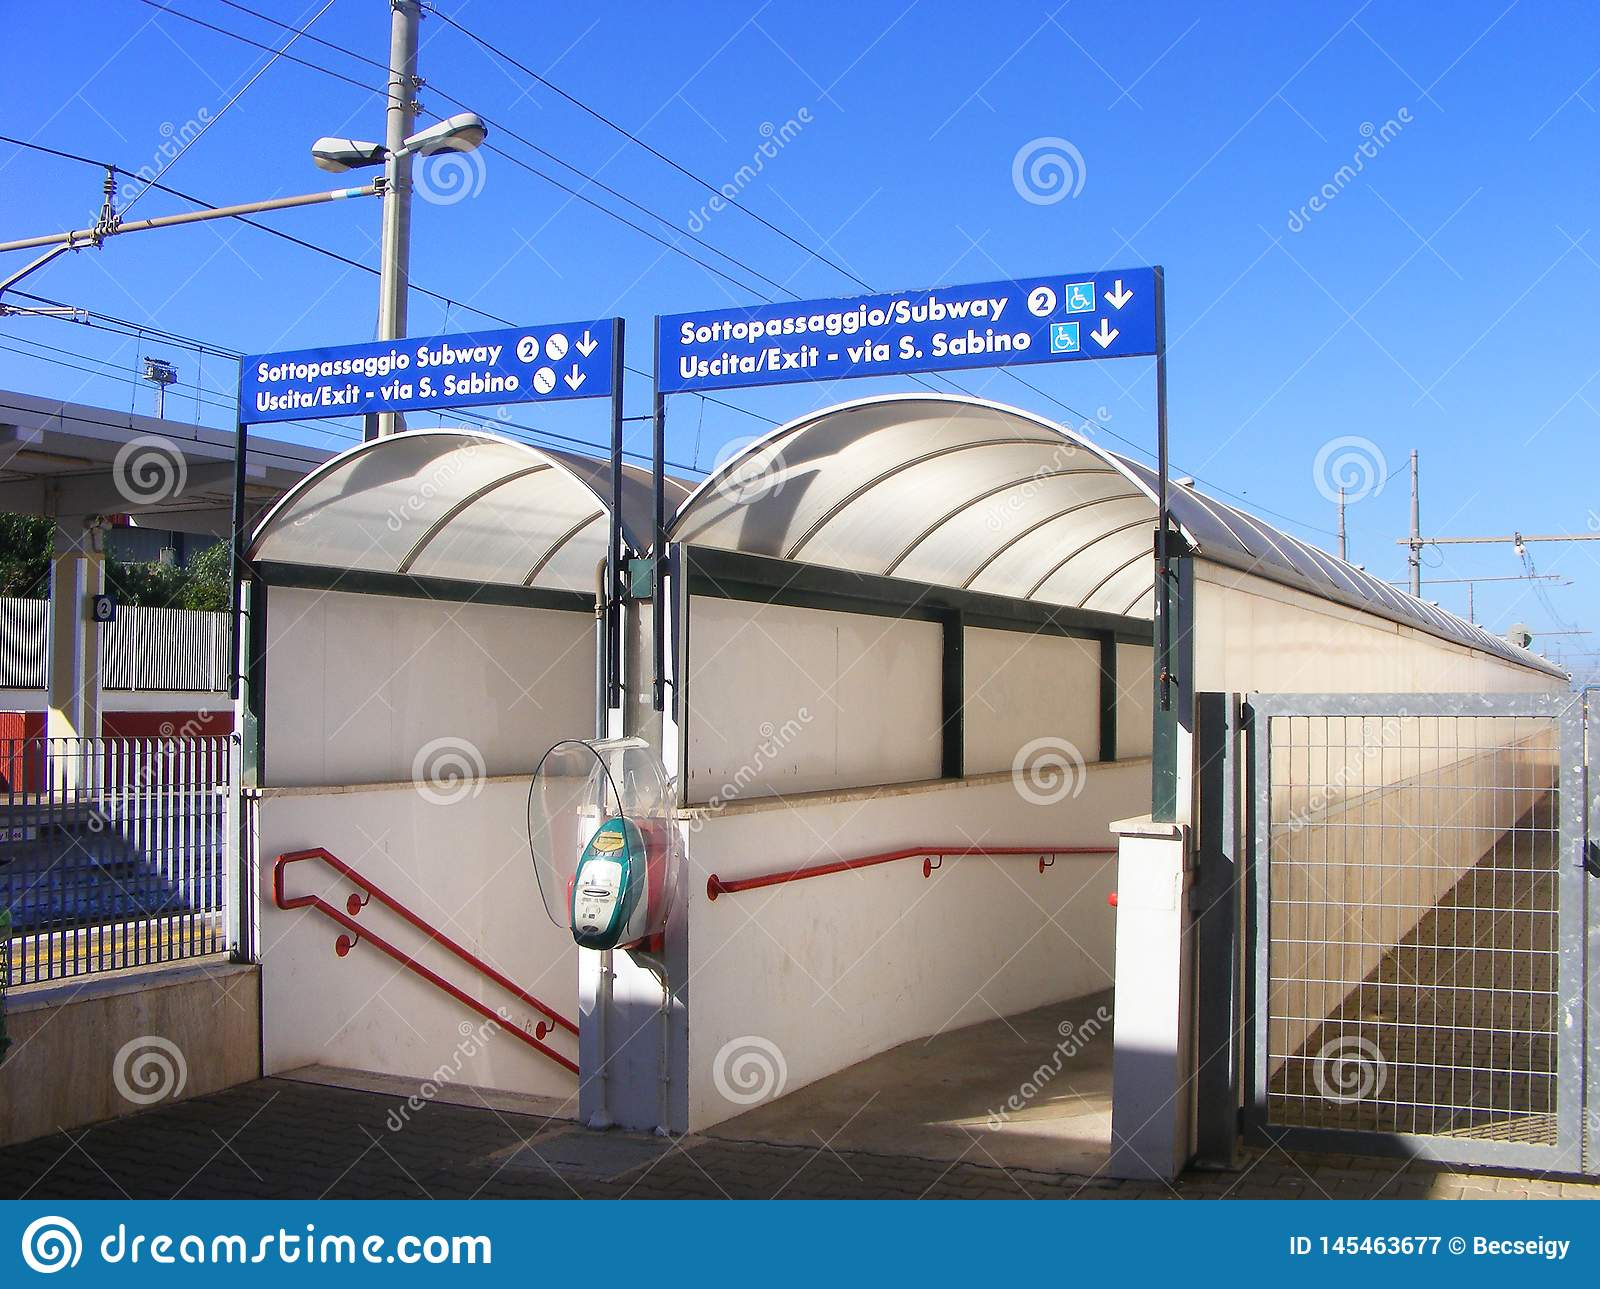 Railway station underpass entrance - South Italy